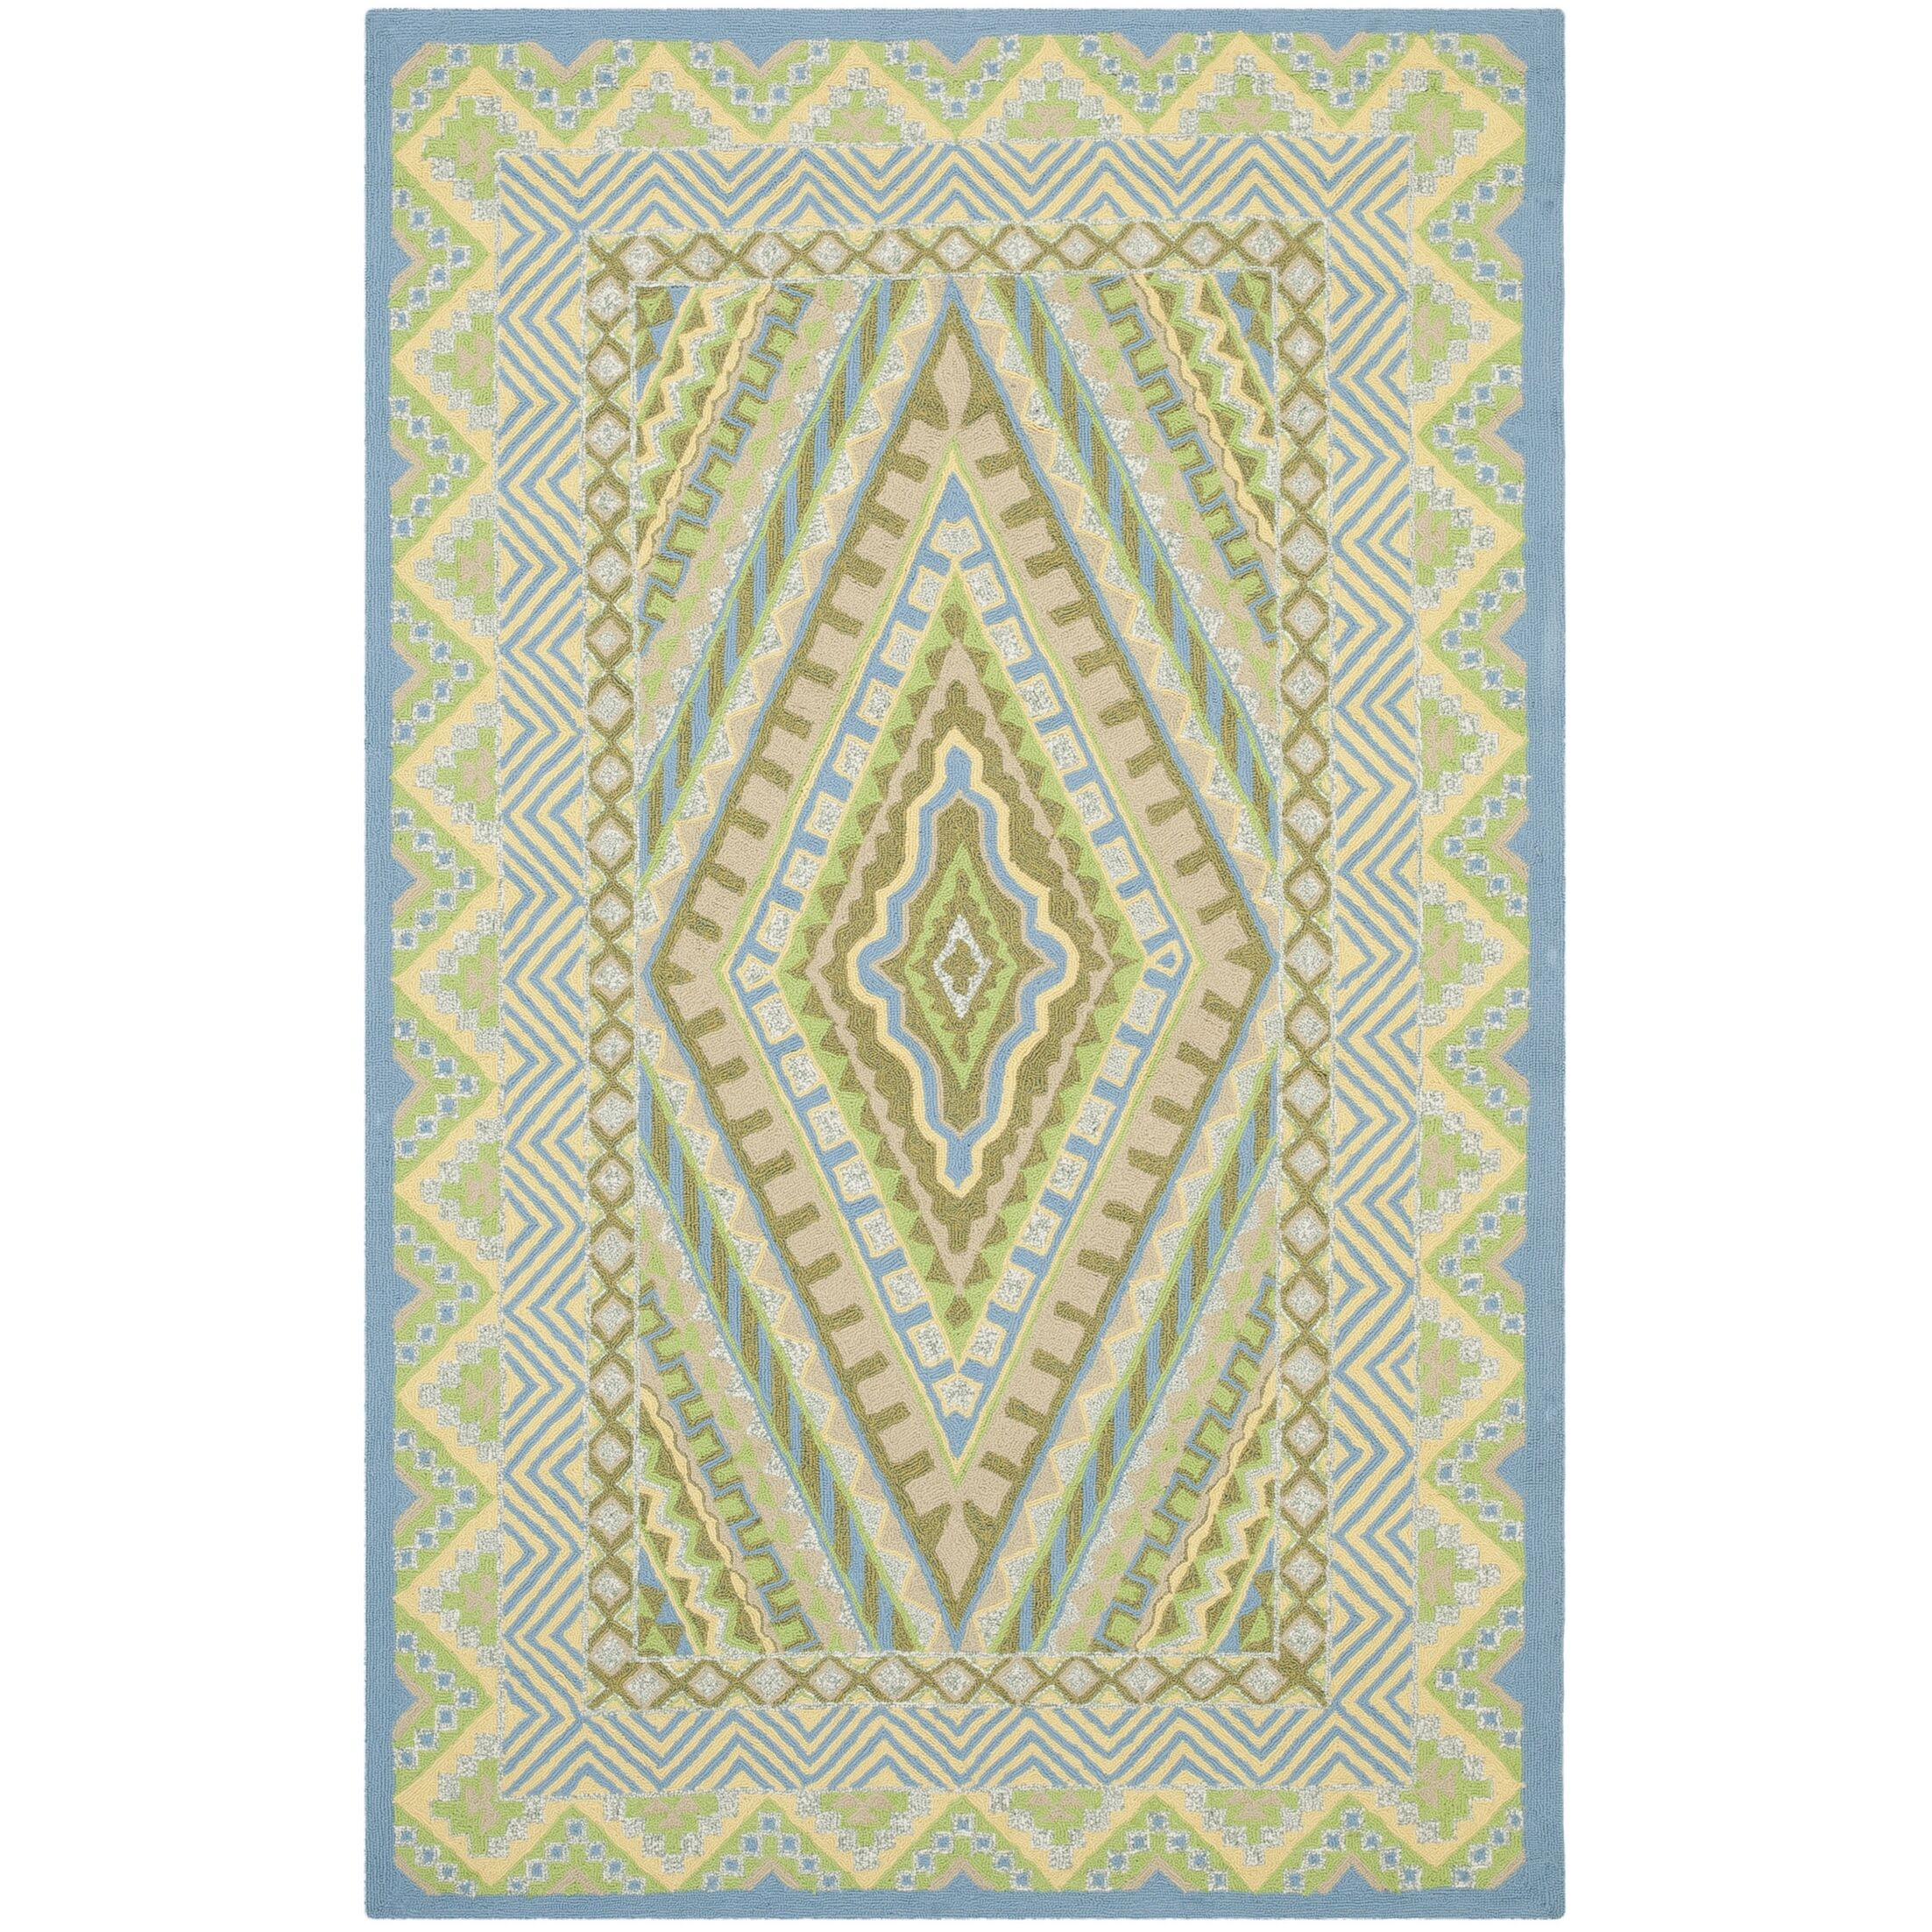 Puri Blue/Yellow Outdoor Area Rug Rug Size: Rectangle 3'6